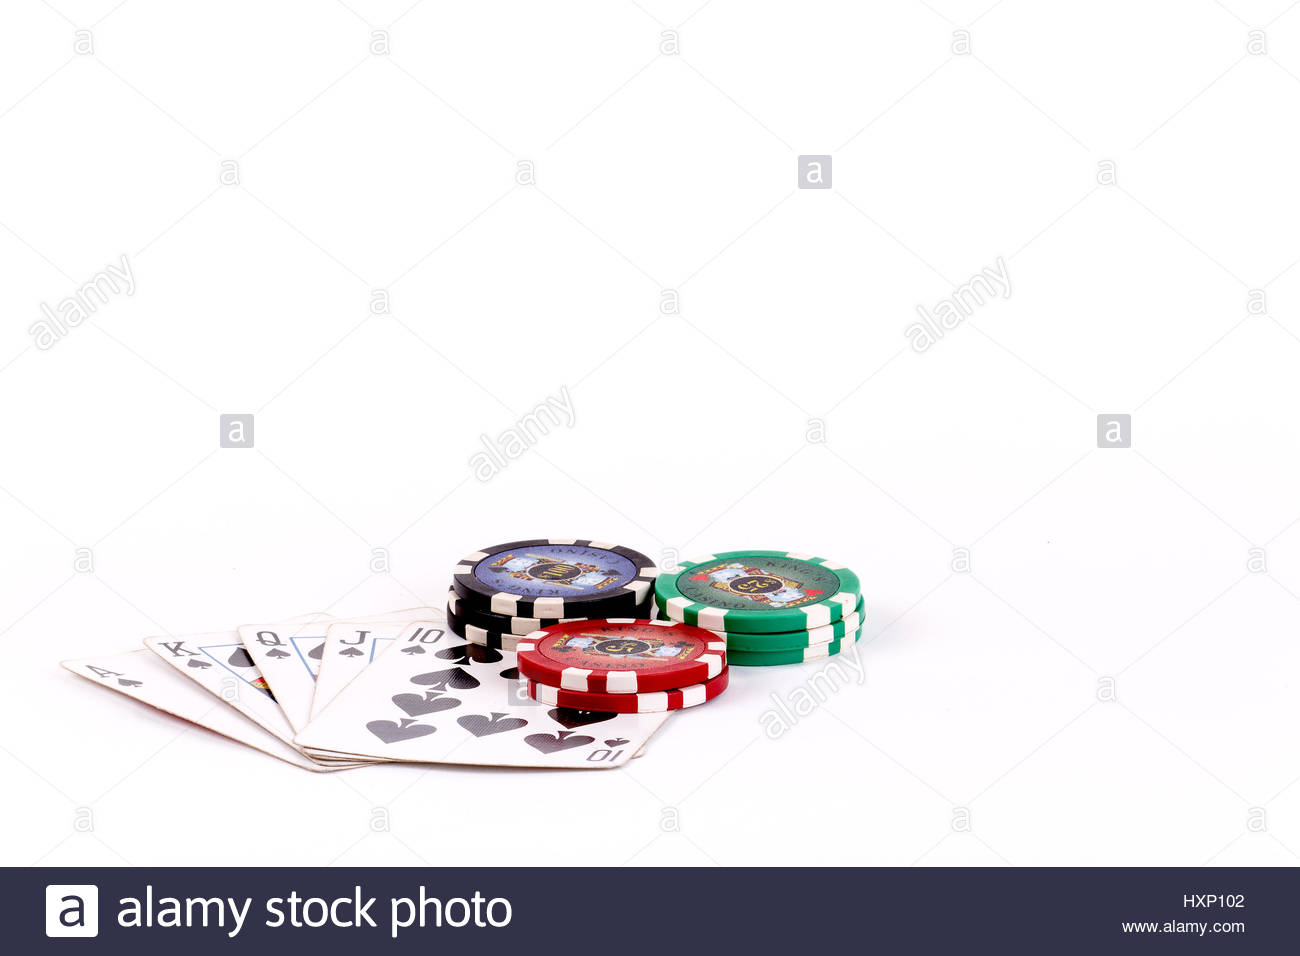 Overhead closeup of a group of 5 playing cards making up a spade royal flush hand with gambling chips set on them - Stock Image